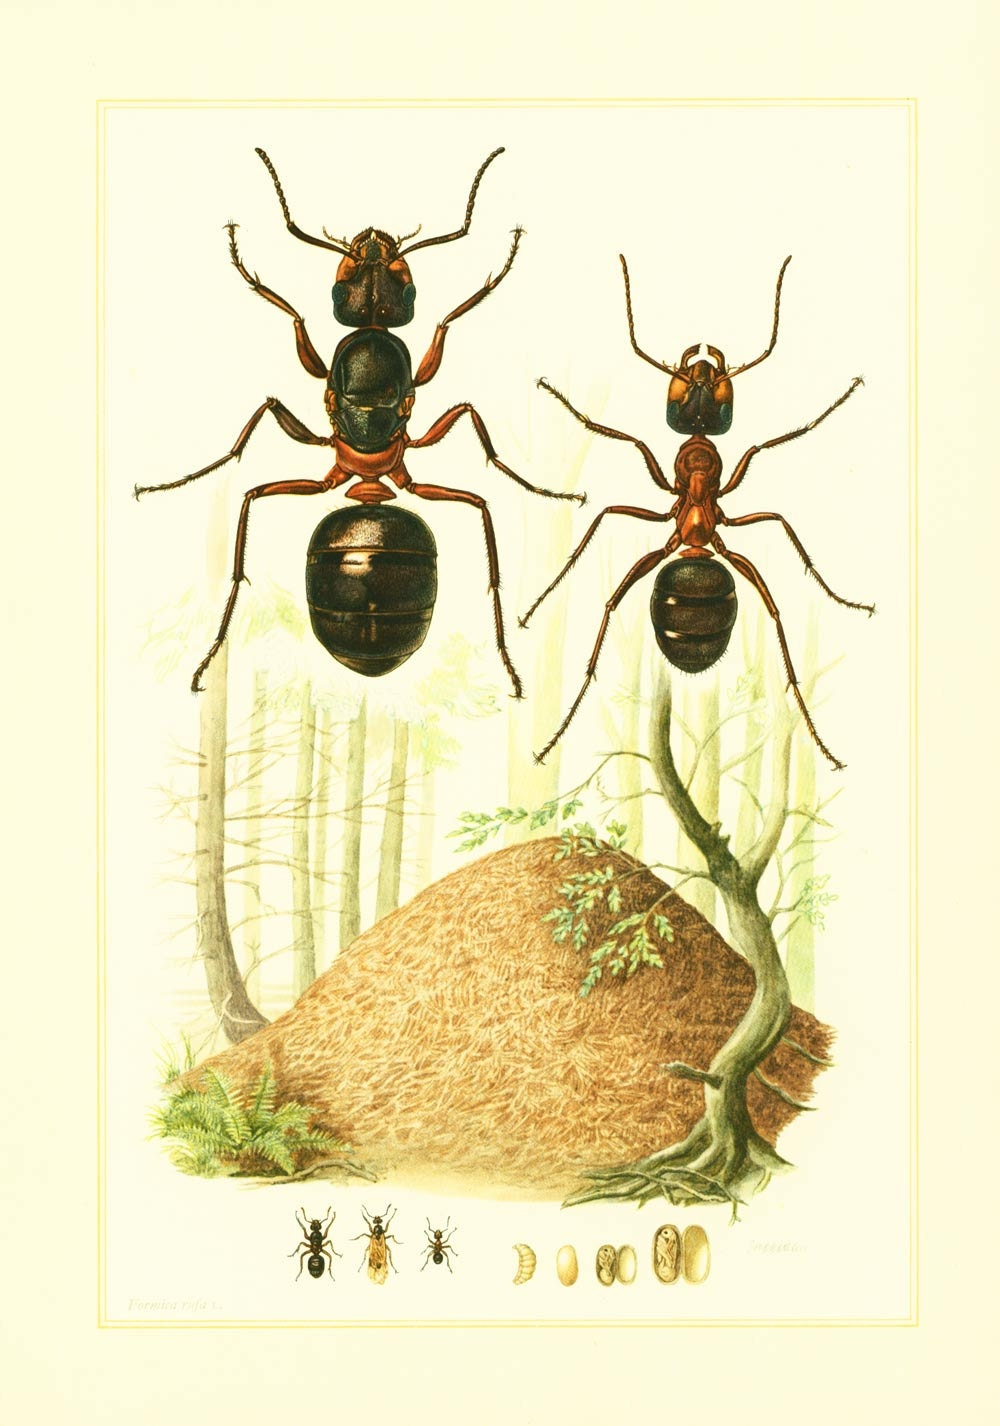 1960 Vintage Ant Print. Ants Illustration. Insect. Entomology.